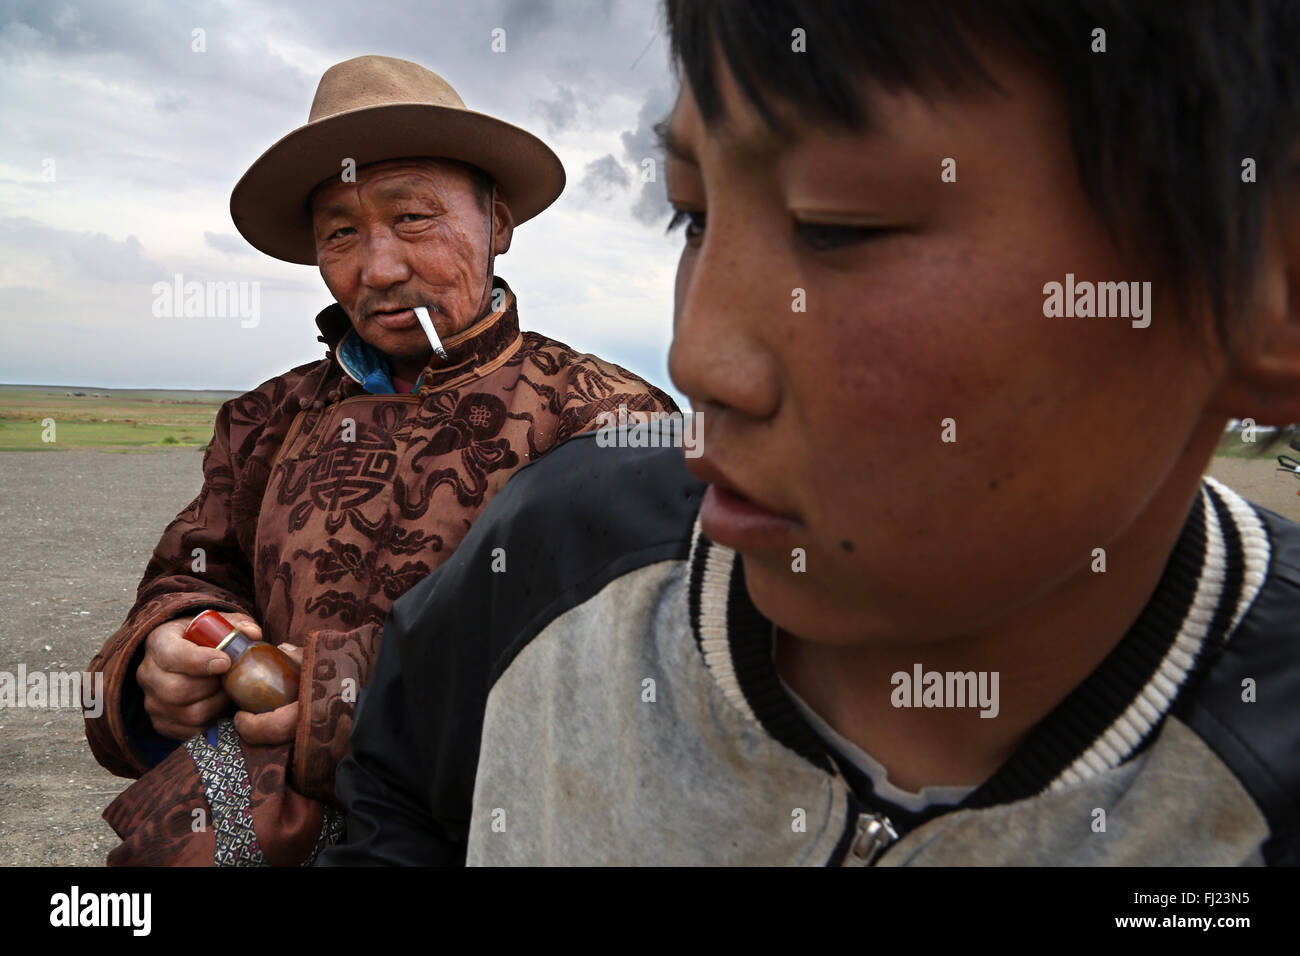 Portrait of man from Mongolia - Stock Image